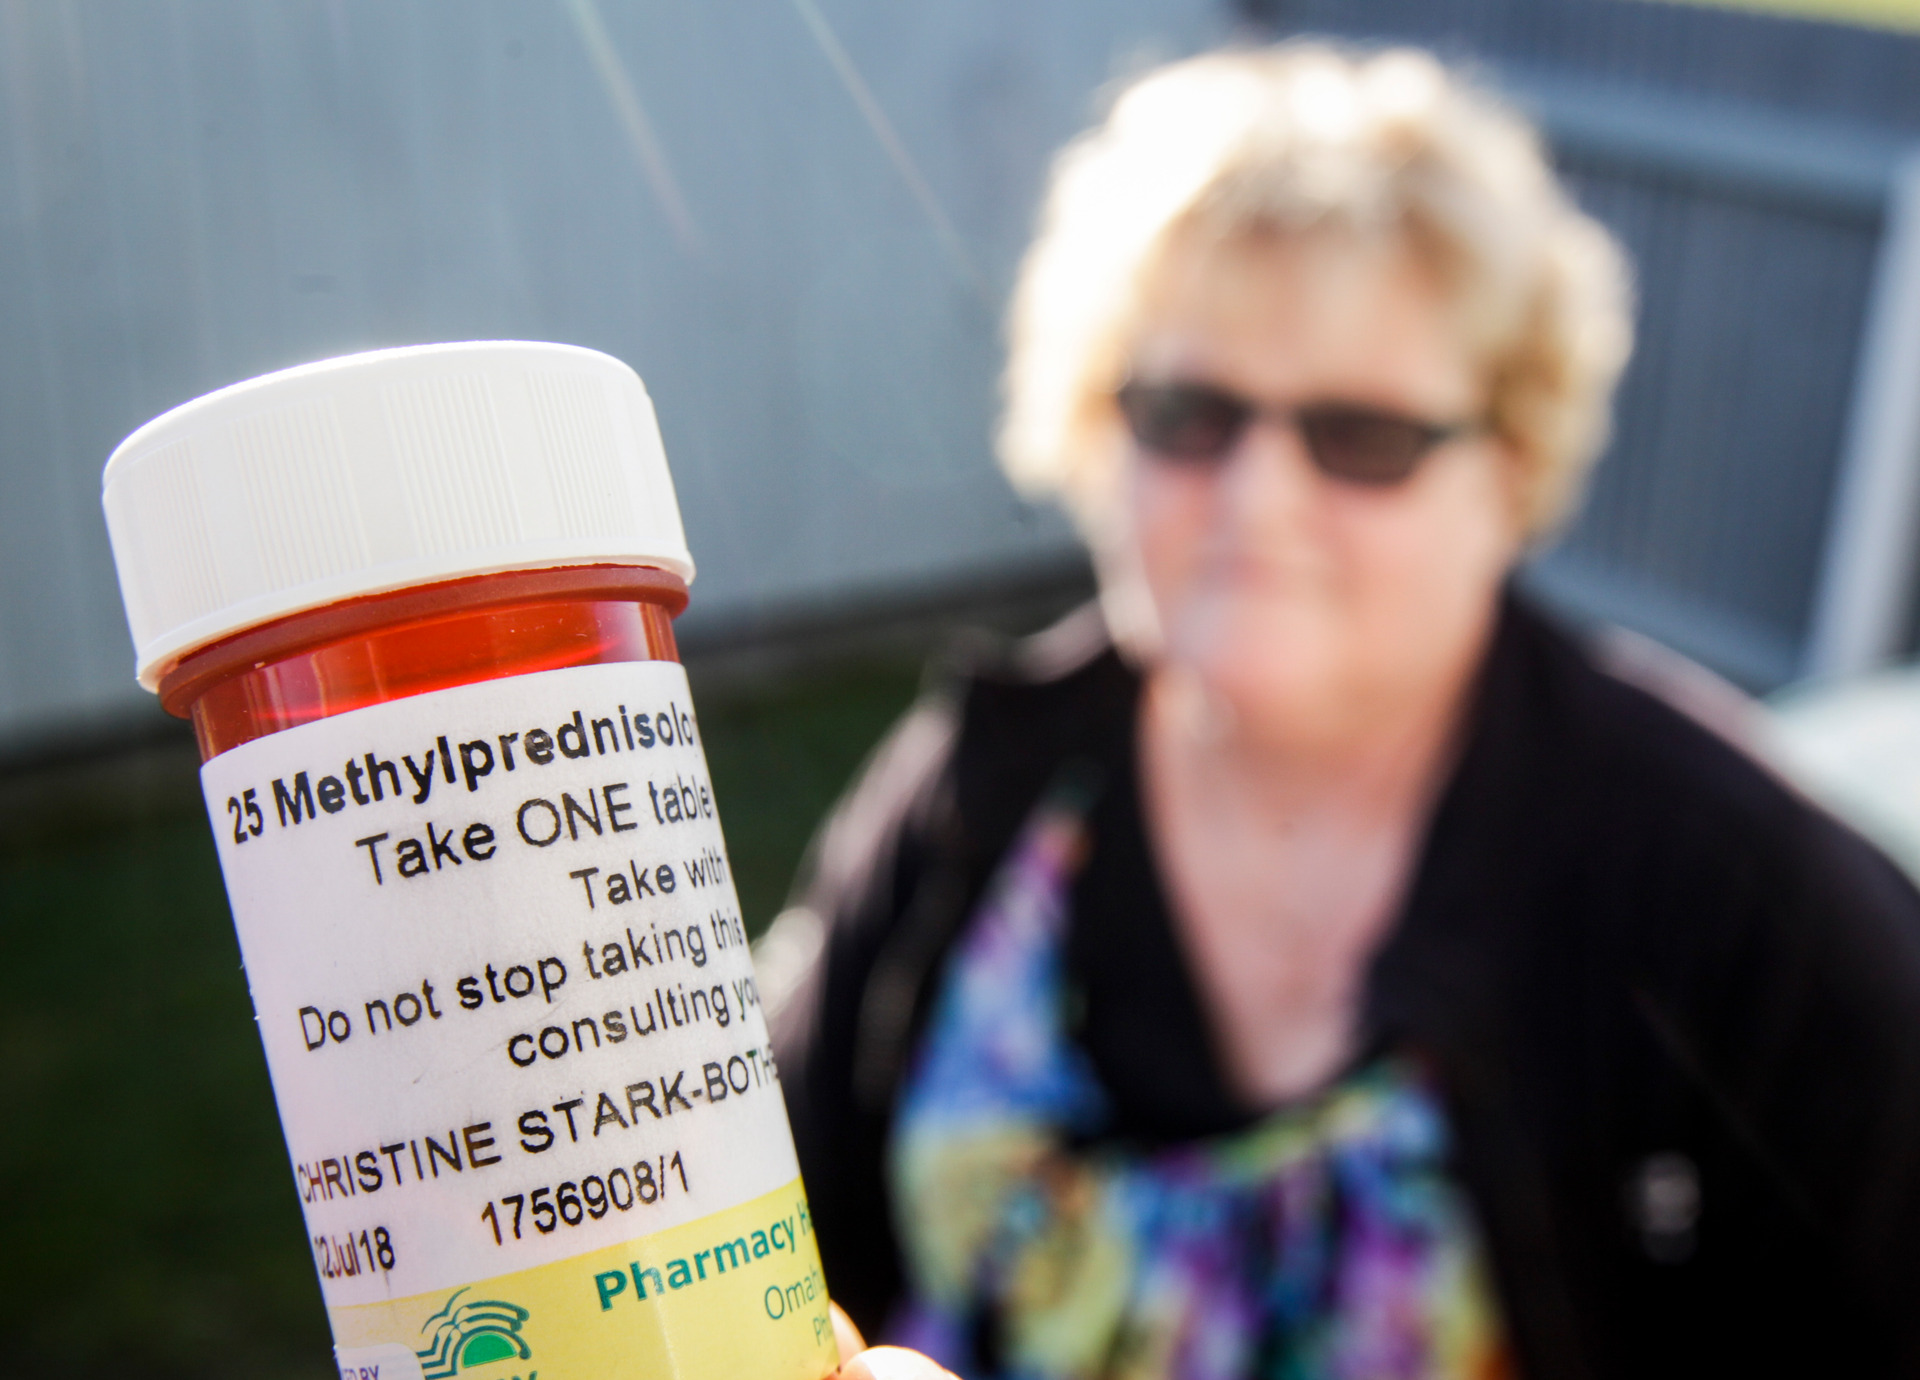 Medication errors prompts Health and Safety Commissioner to call for nationwide electronic system